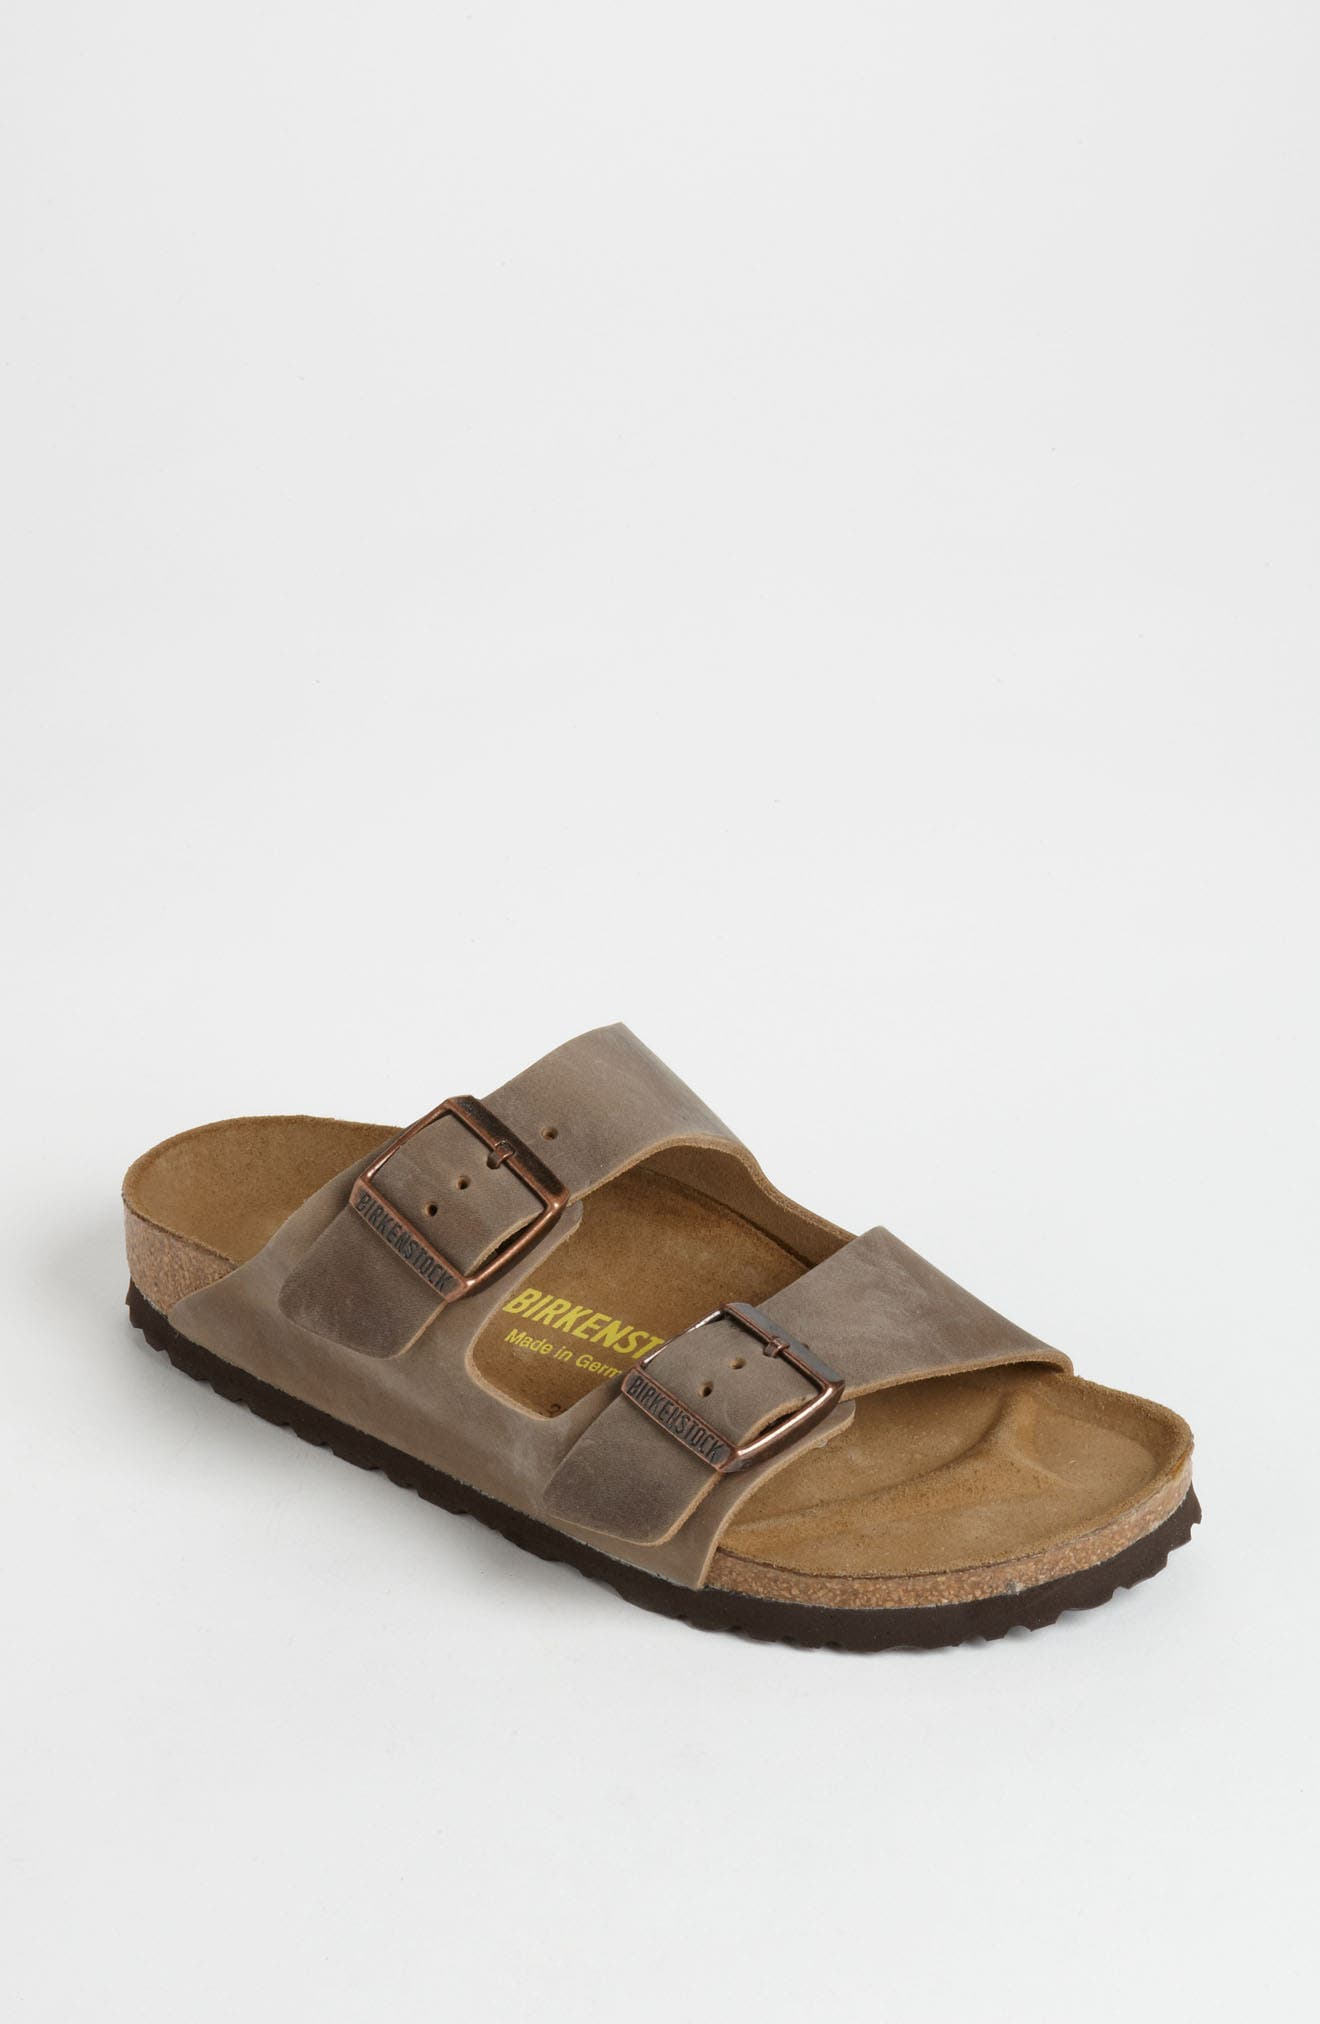 Arizona Sandal,                             Alternate thumbnail 8, color,                             TOBACCO BROWN OILED